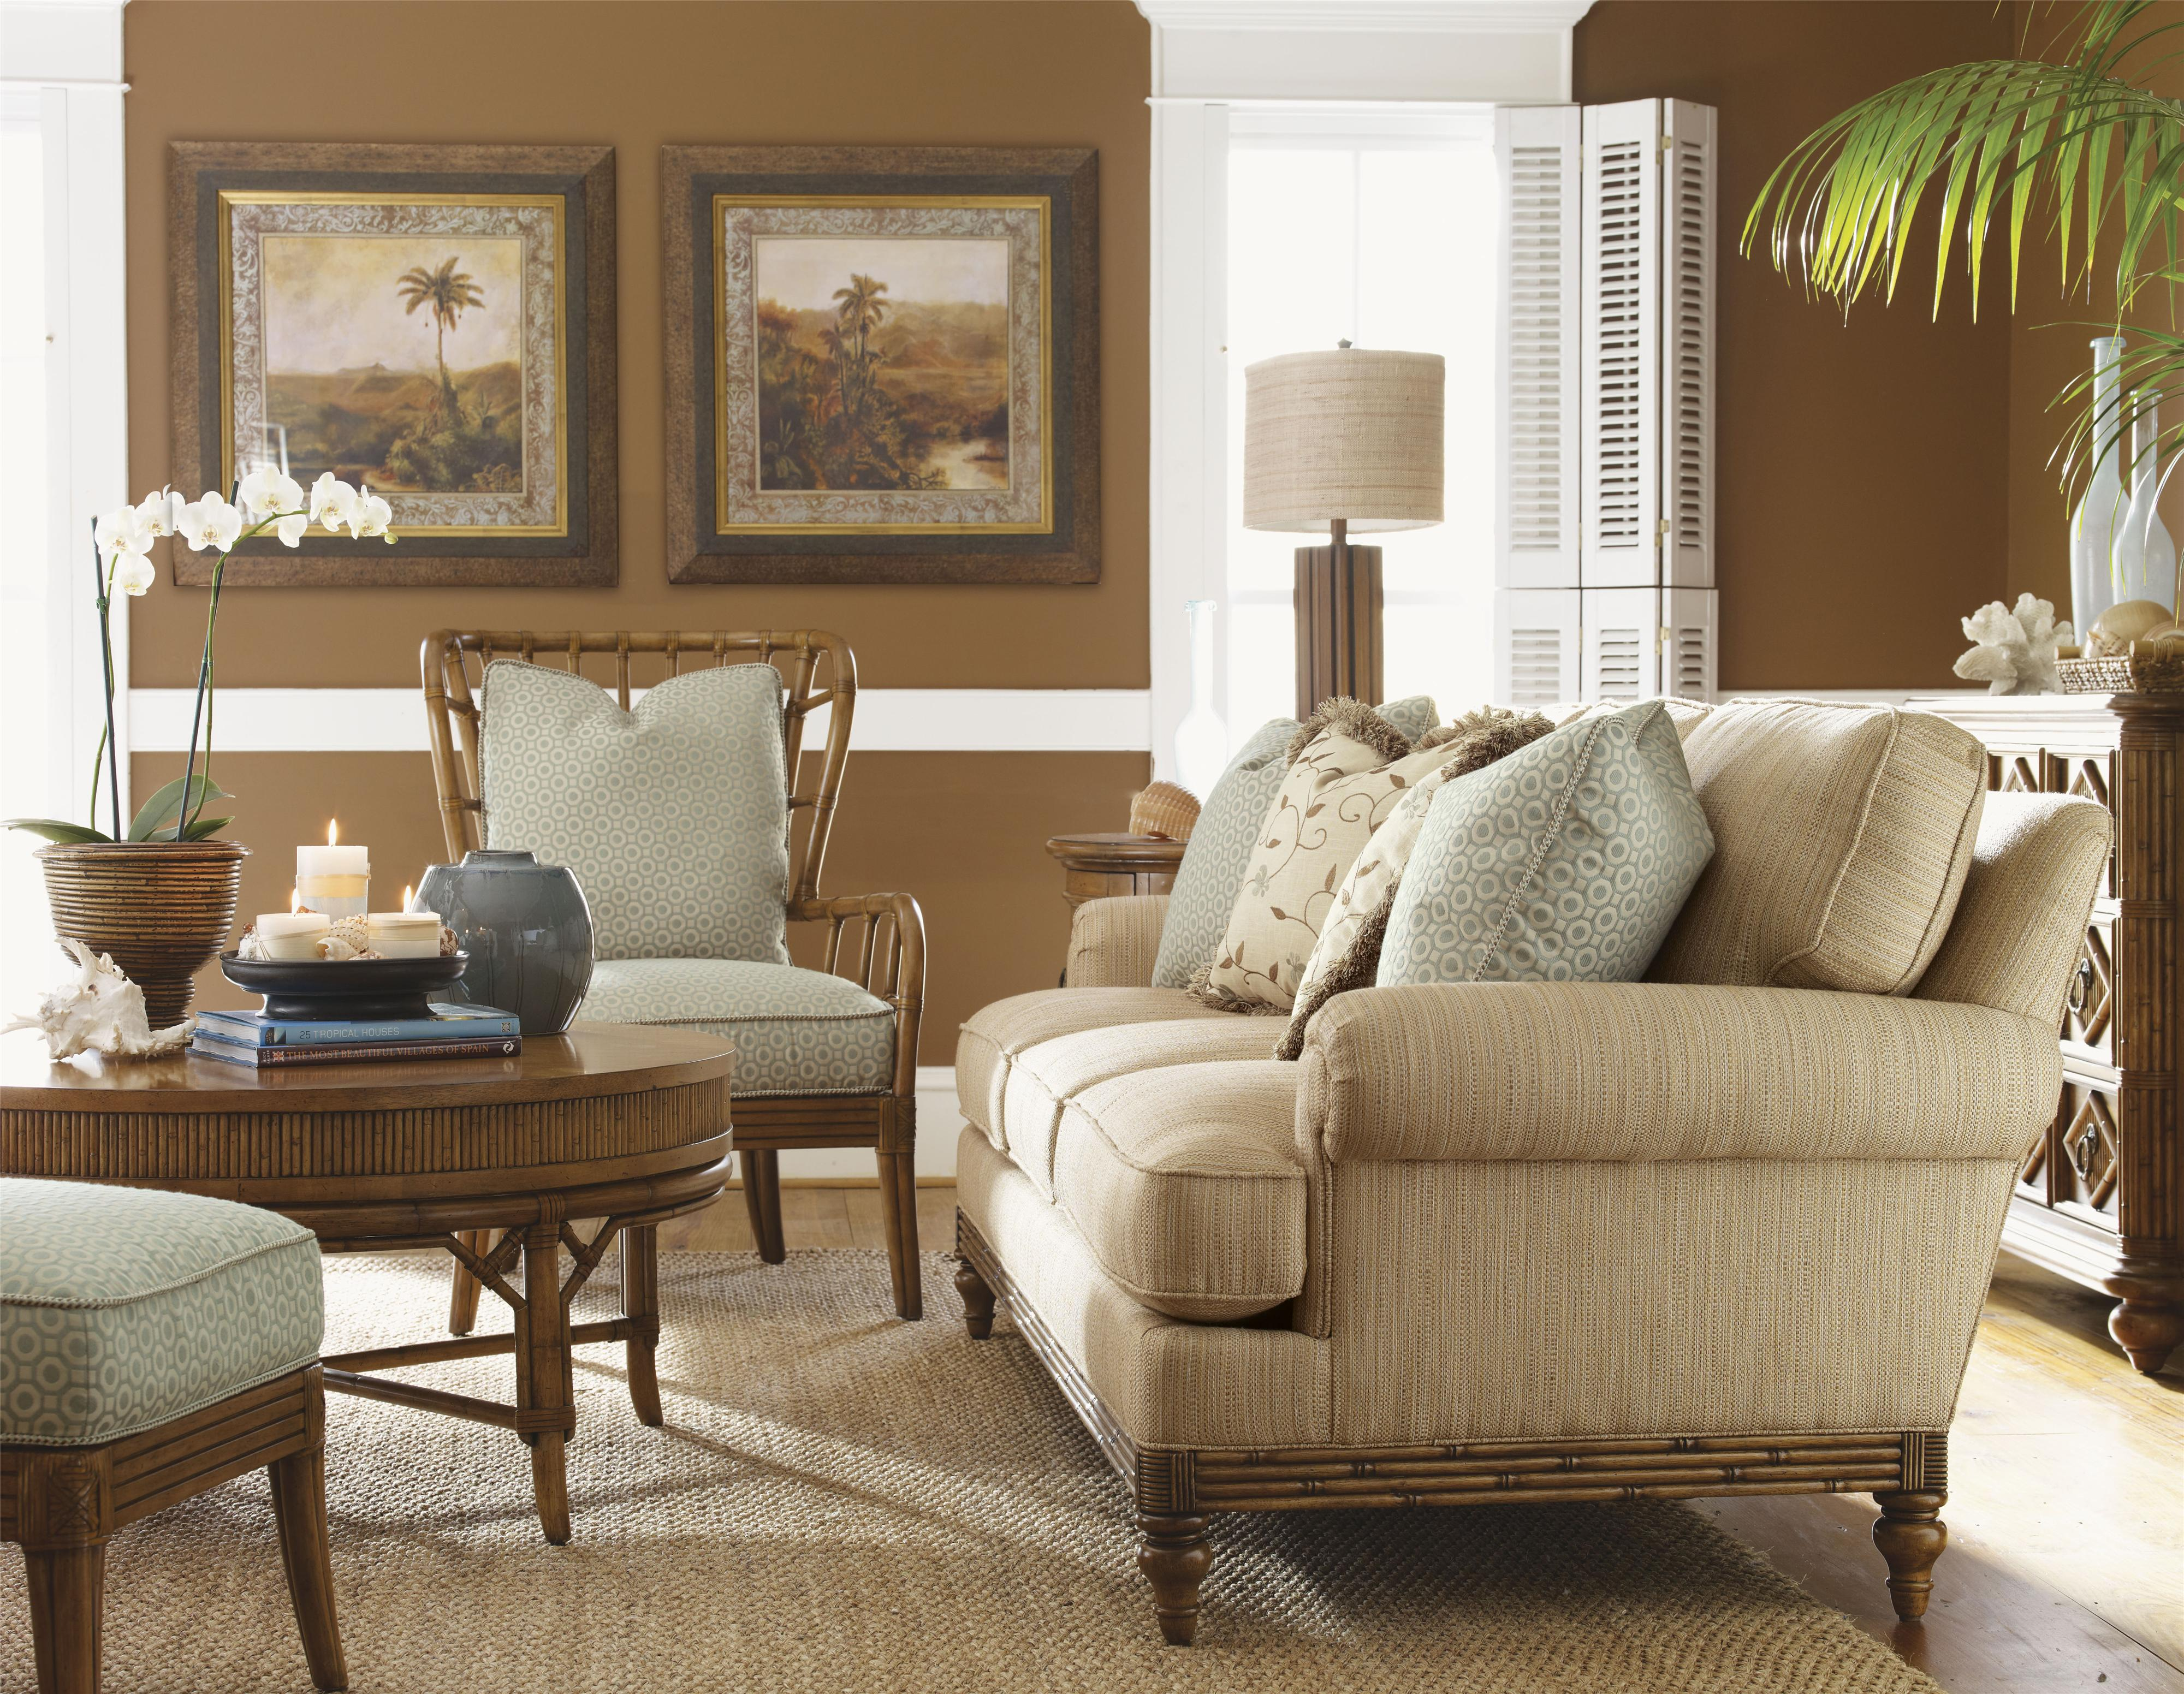 tommy bahama beach chair uk christopher knight chairs house plans home design and style